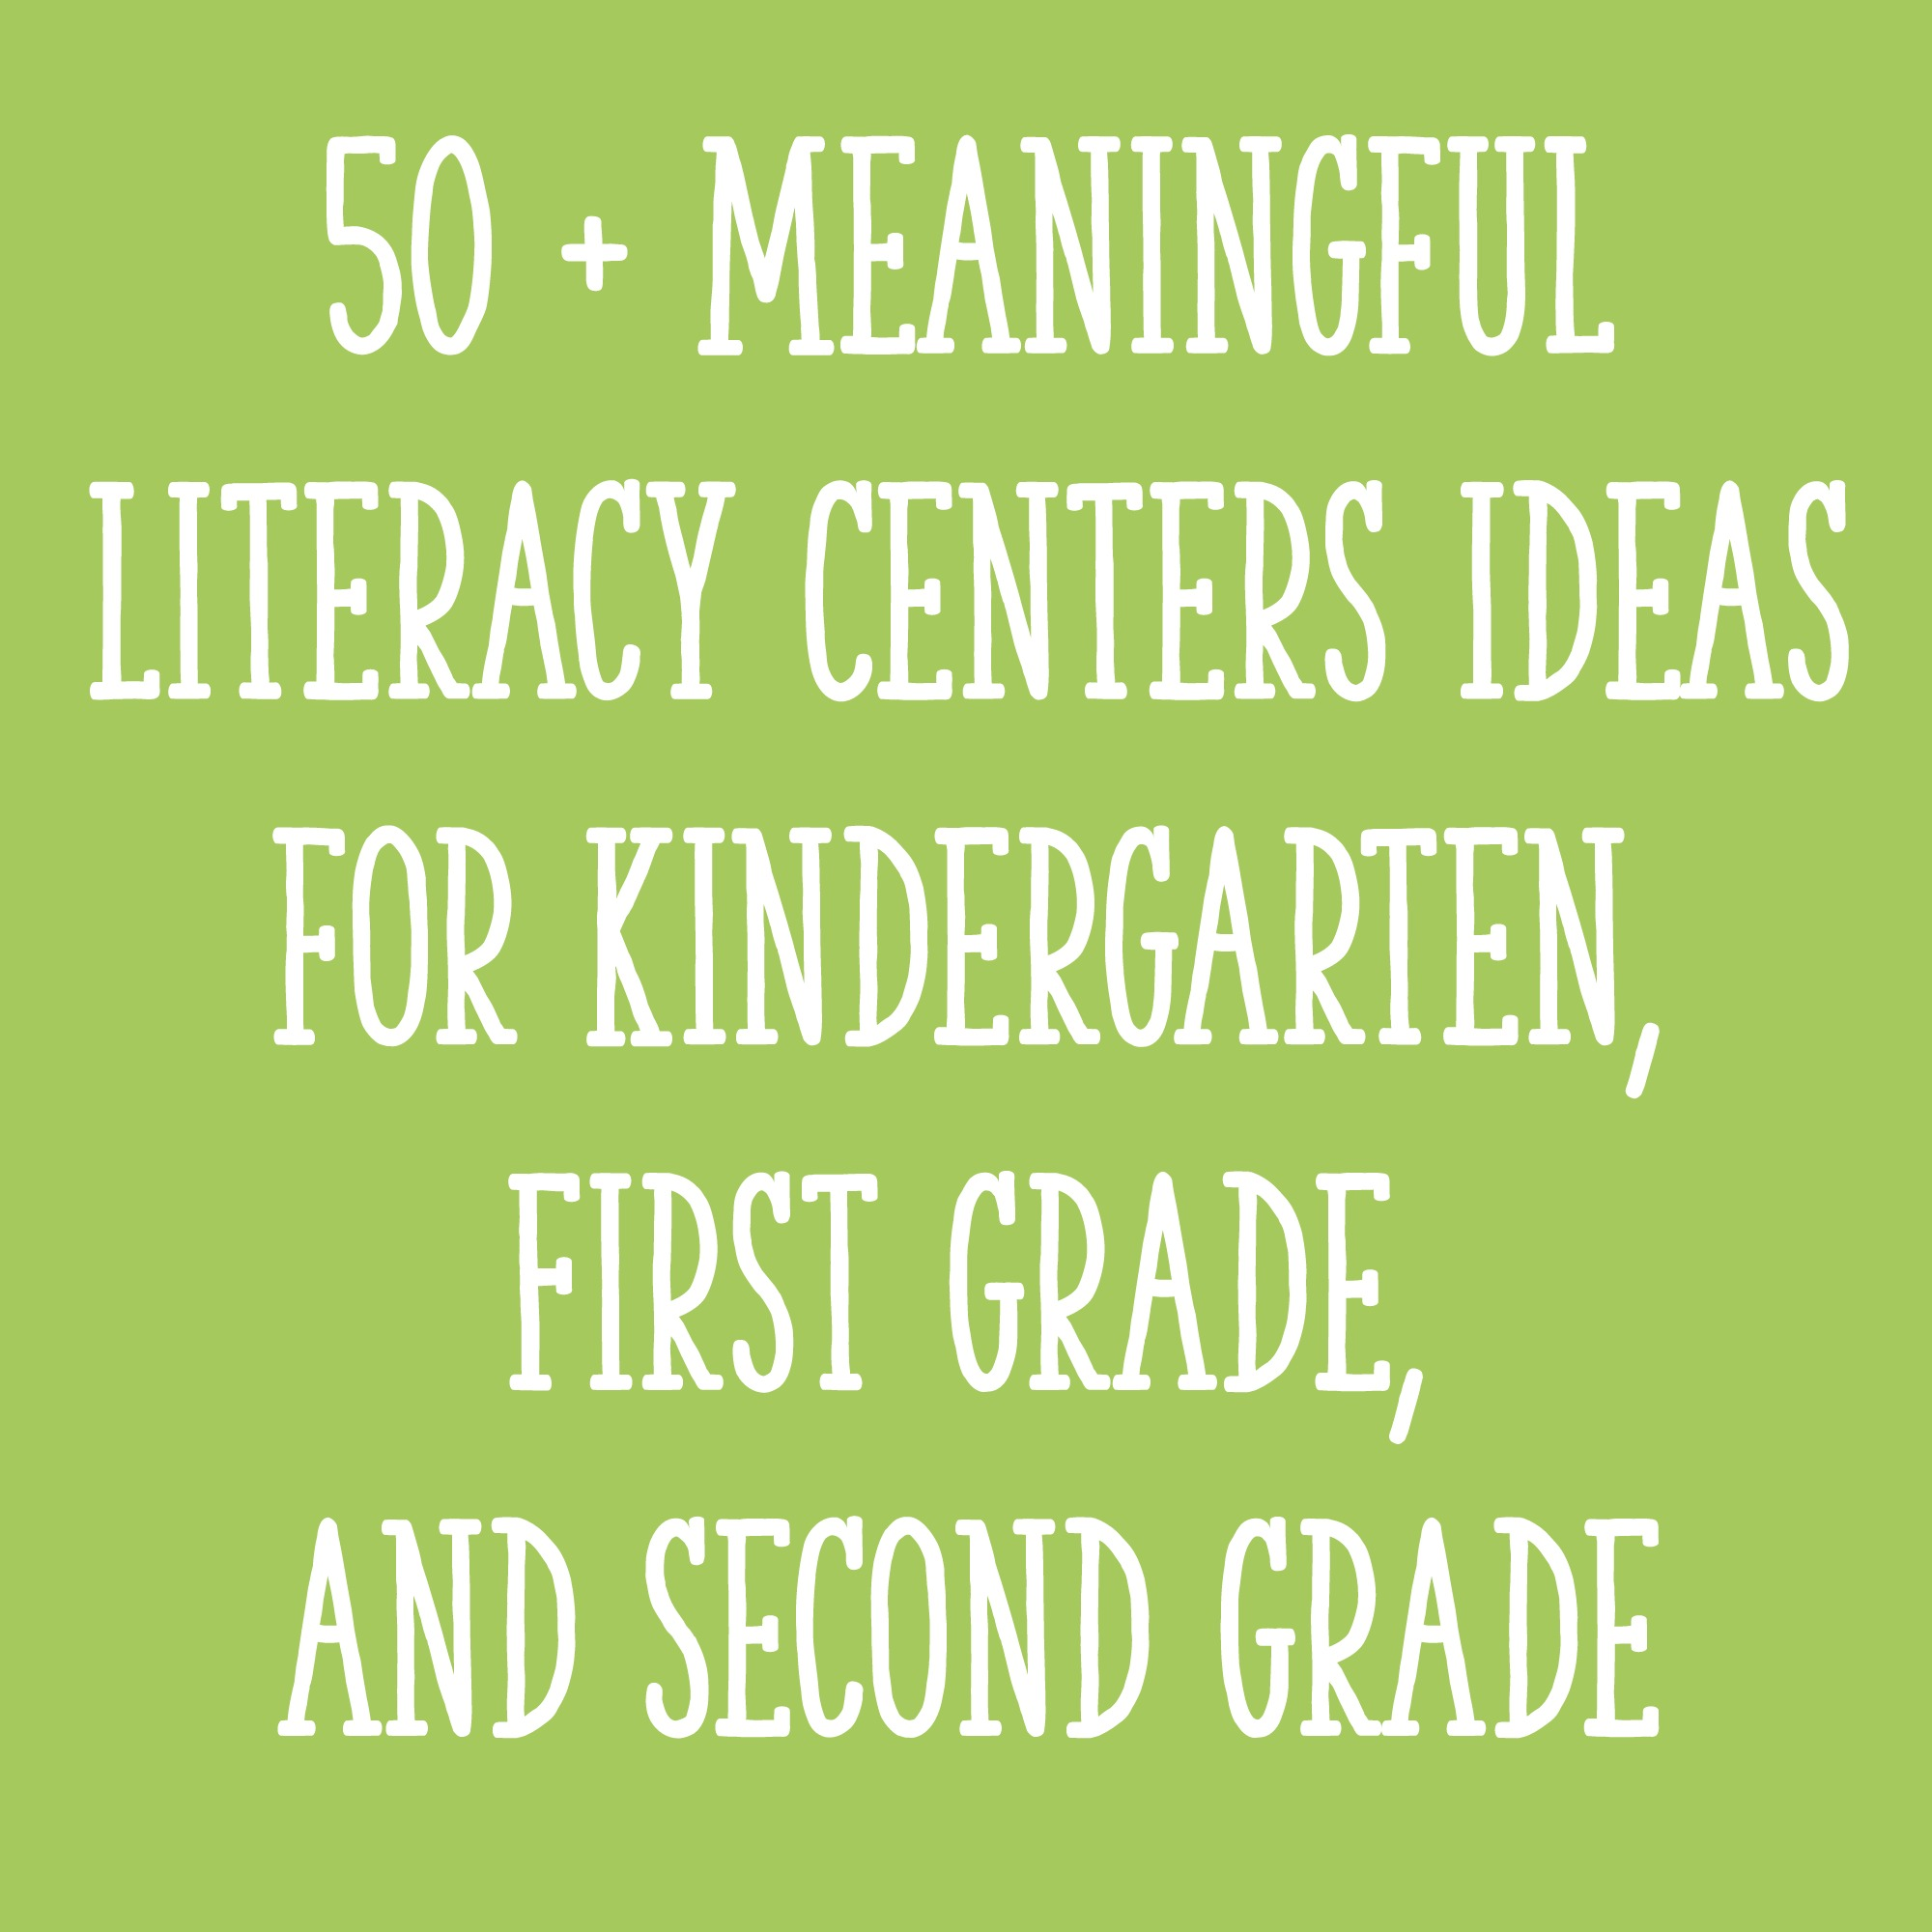 50 Meaningful Literacy Centers Ideas For Kindergarten First Grade